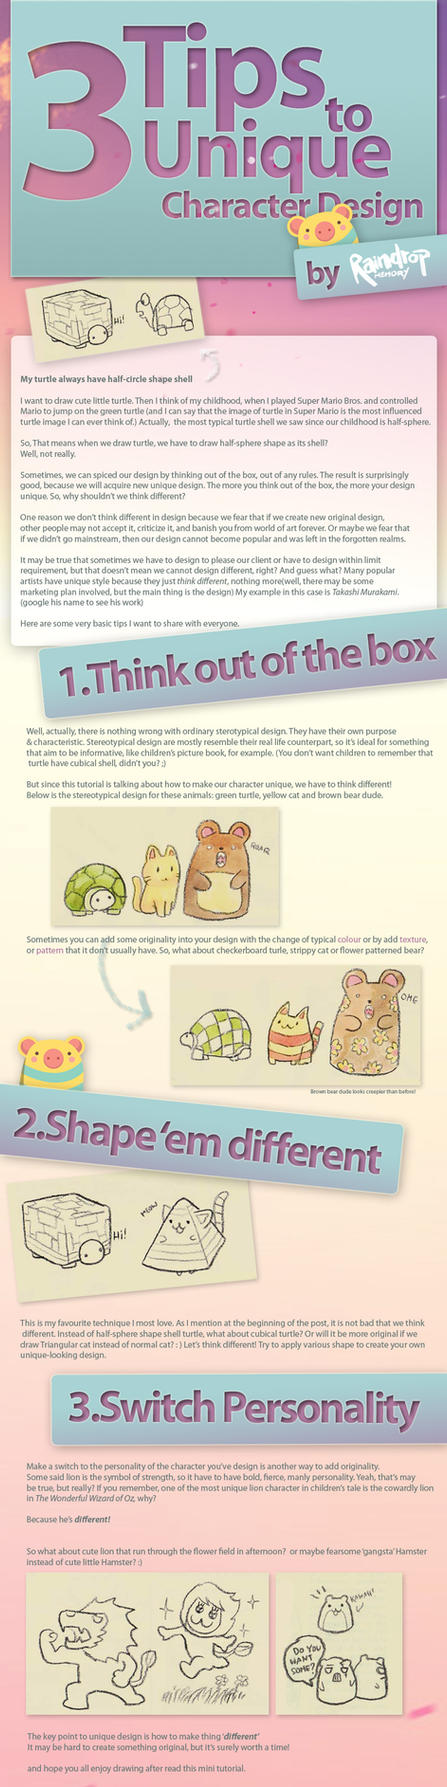 3 Tips to Character Design by Raindropmemory